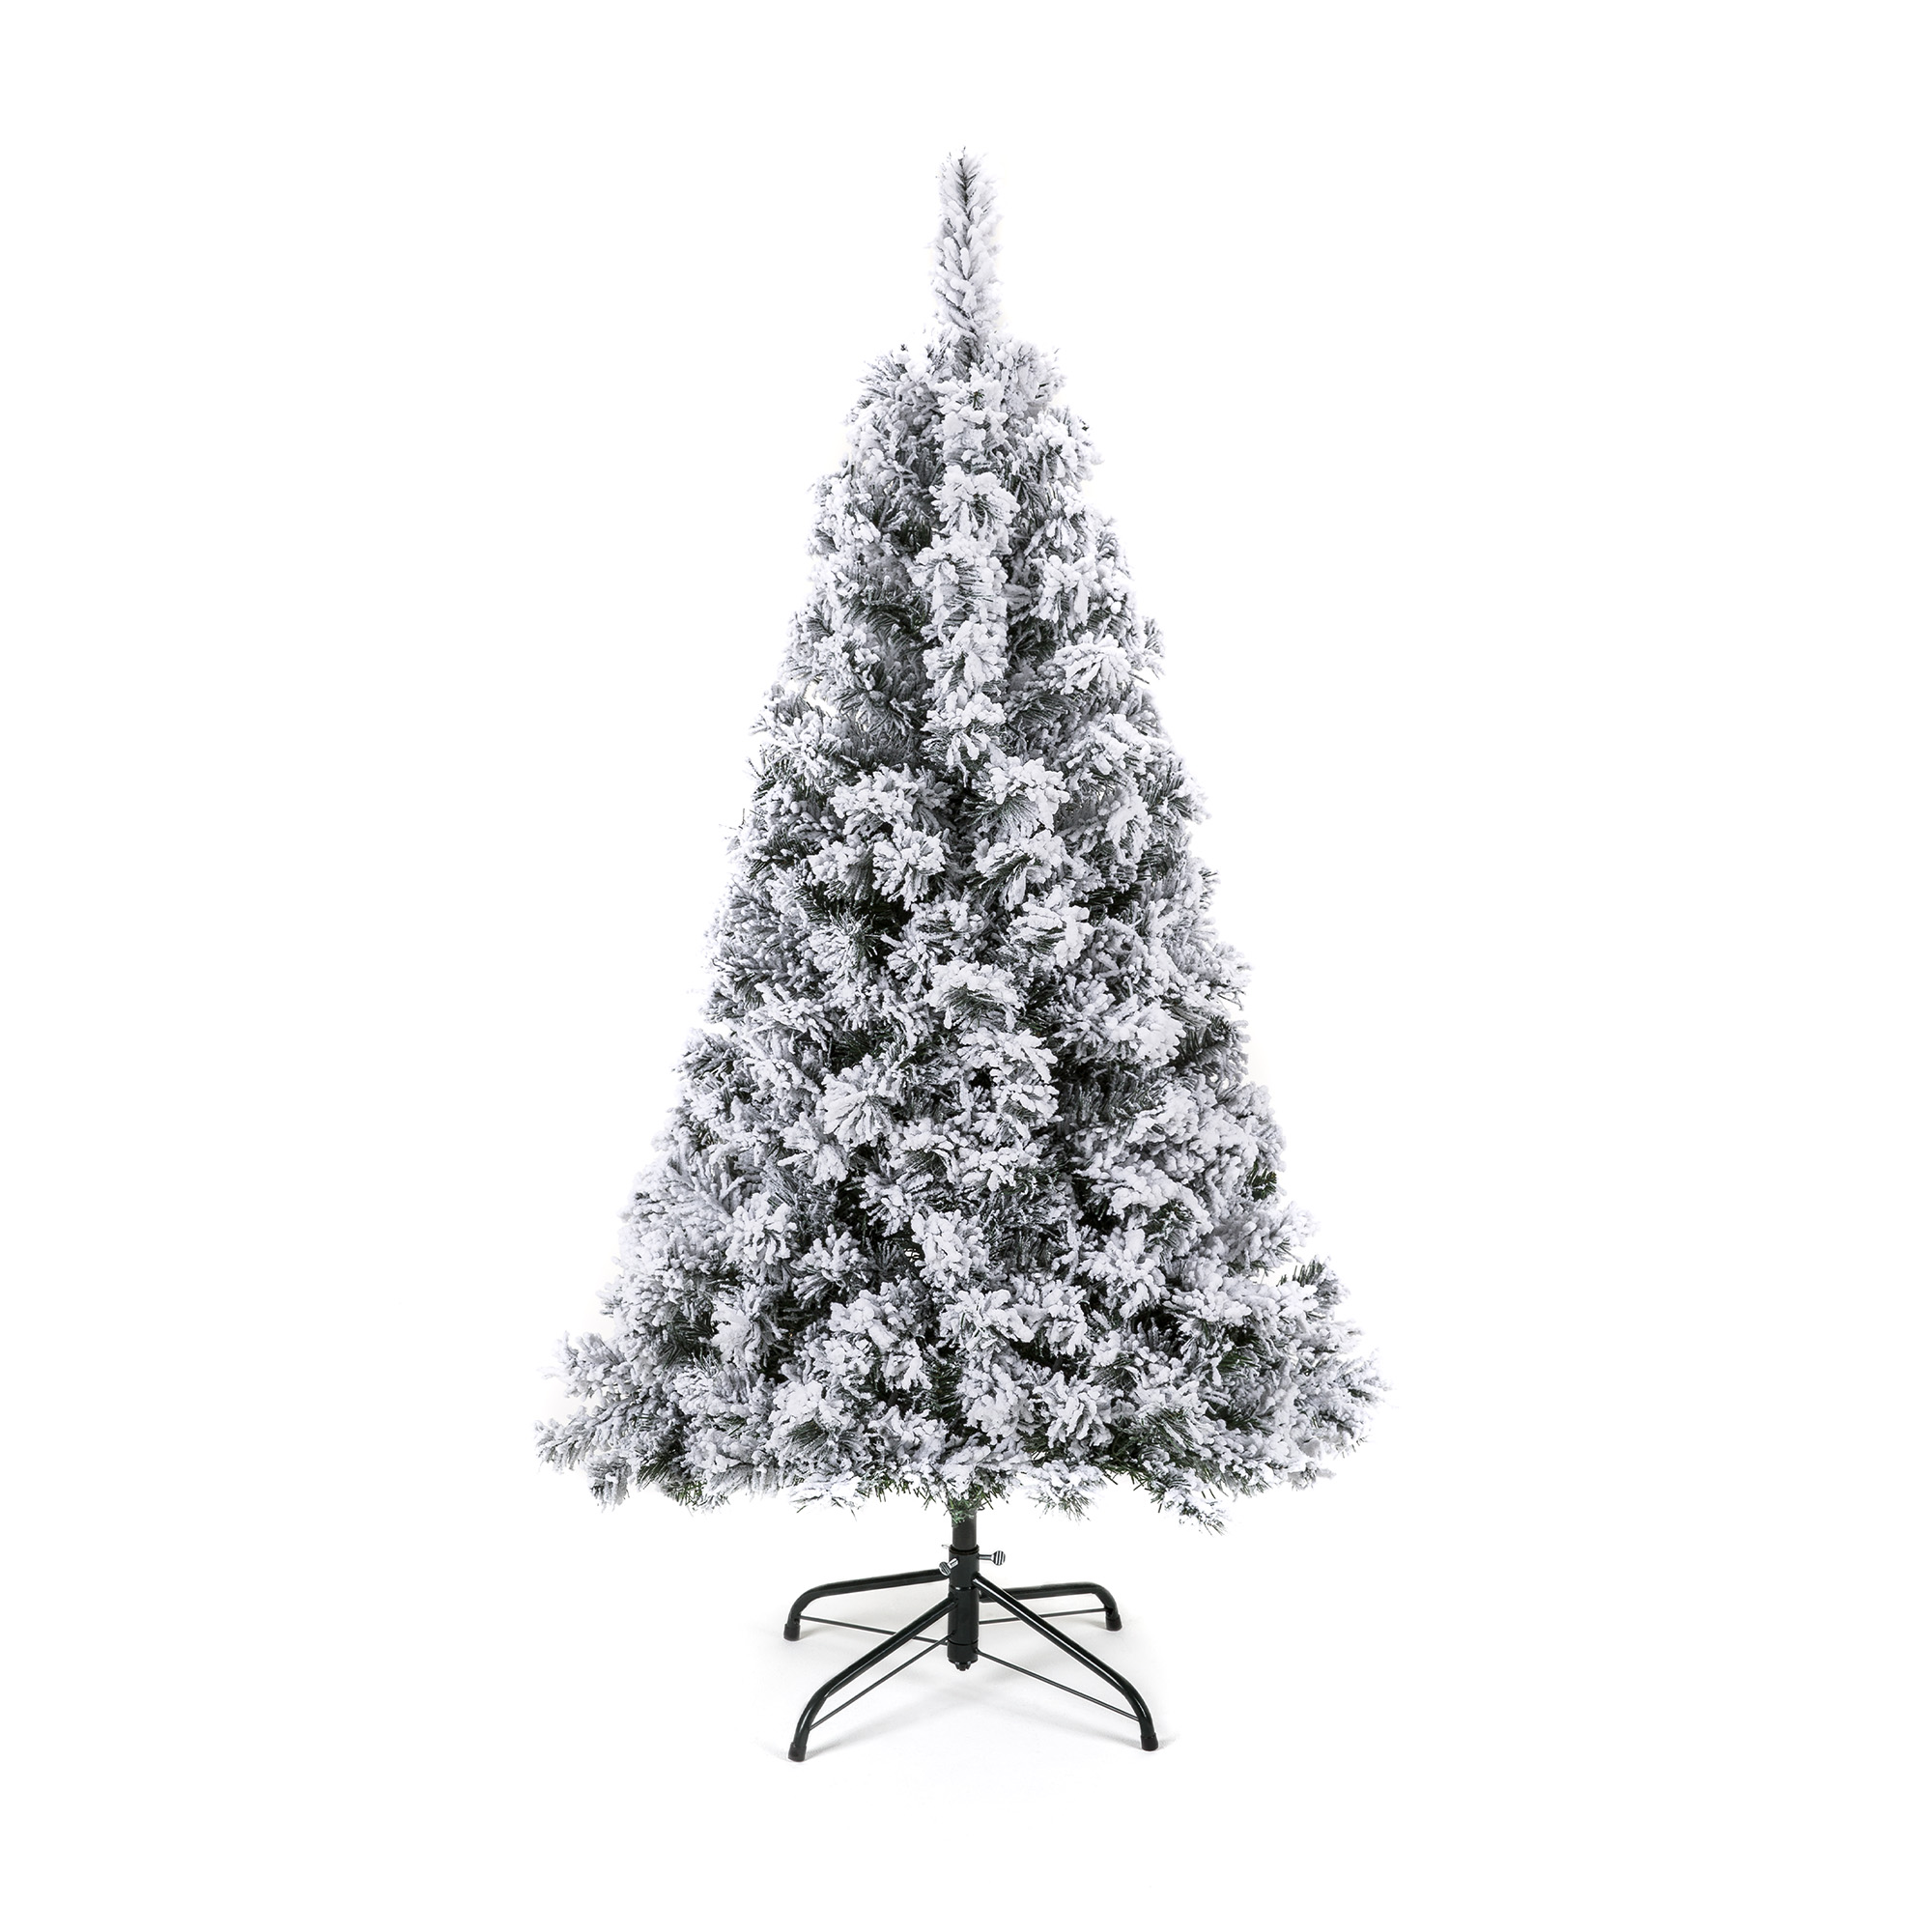 Green Best Choice Products 6 Foot Snow Flocked Artificial Pencil Christmas Tree Holiday Decoration With Metal Stand Home Kitchen Seasonal Decor